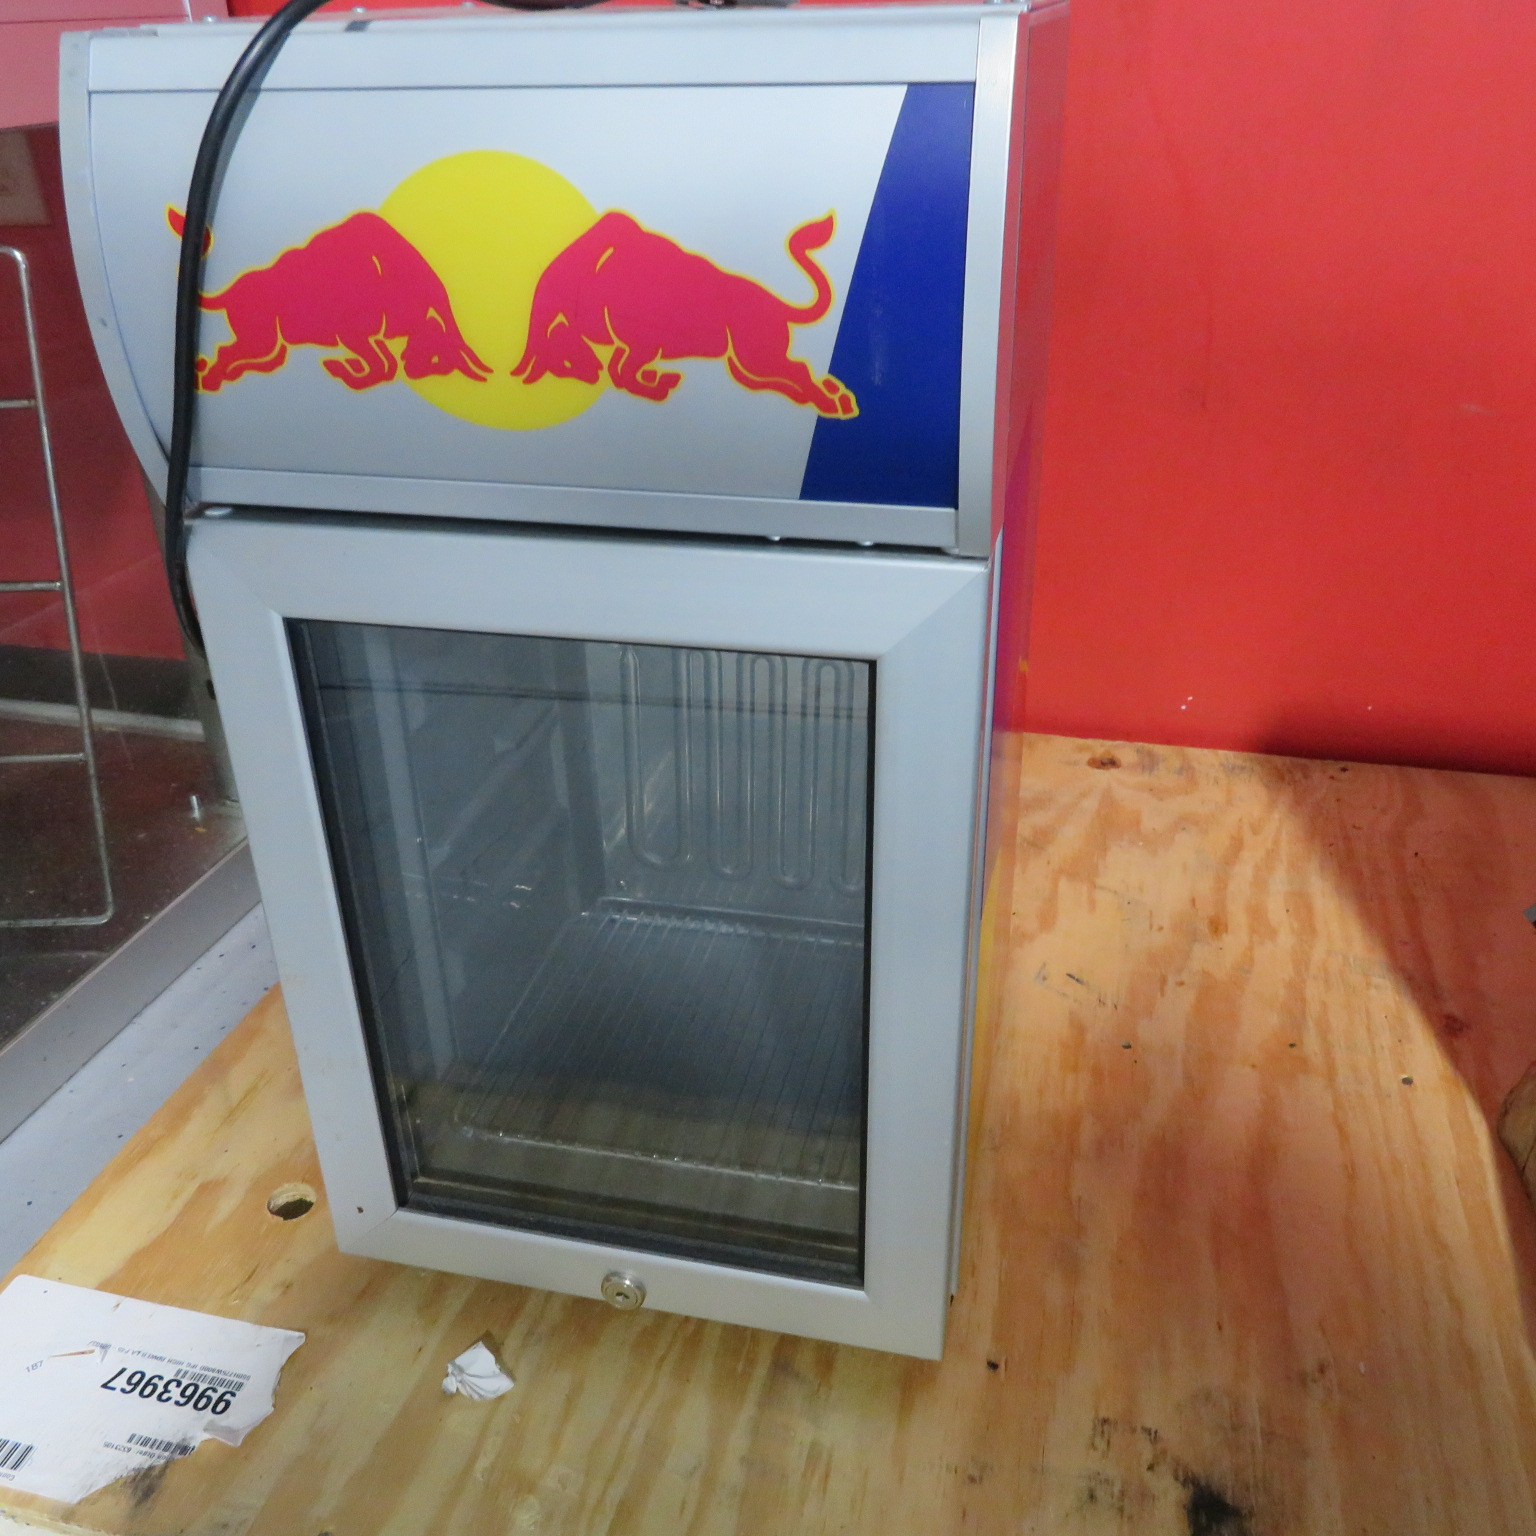 RED BULL COUNTERTOP REFRIGERATOR